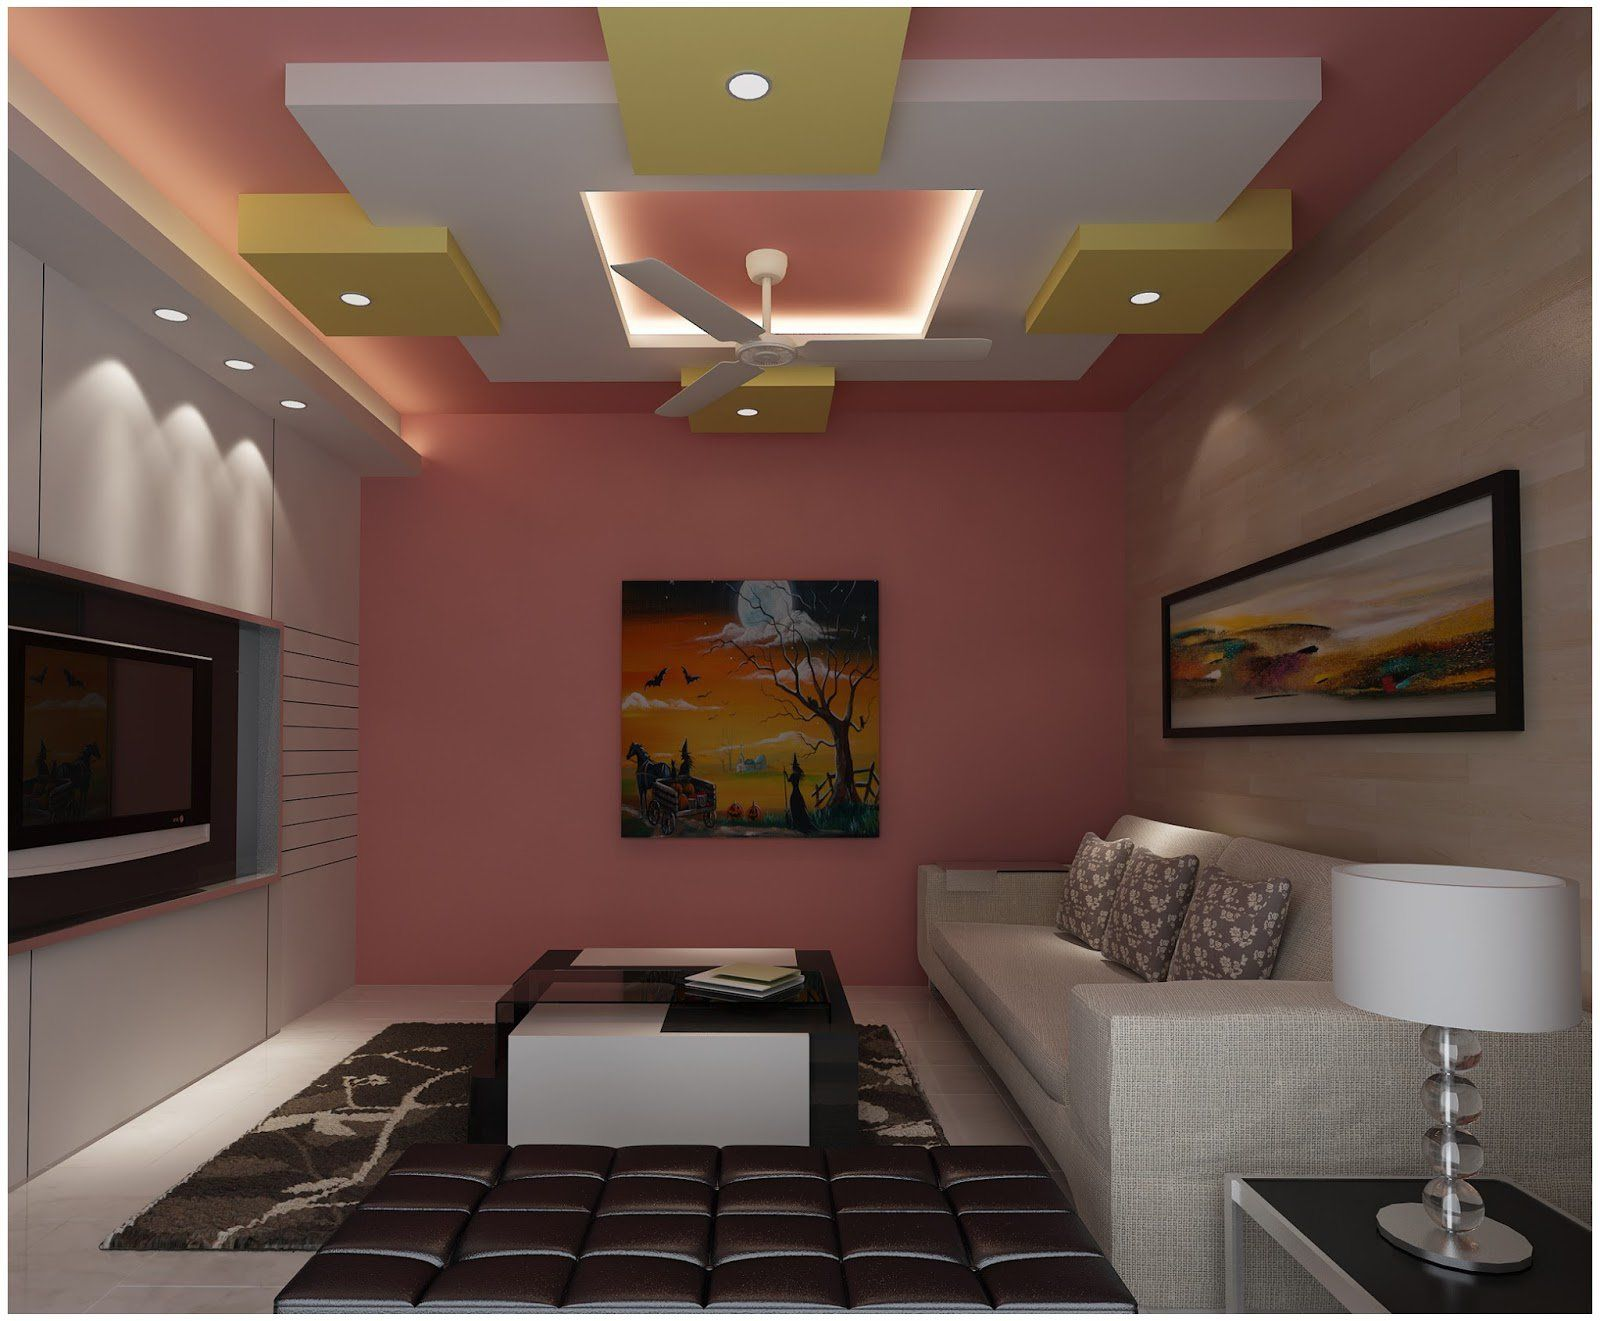 Ceiling Designs for Your Living Room | Ceilings, Living rooms and ...